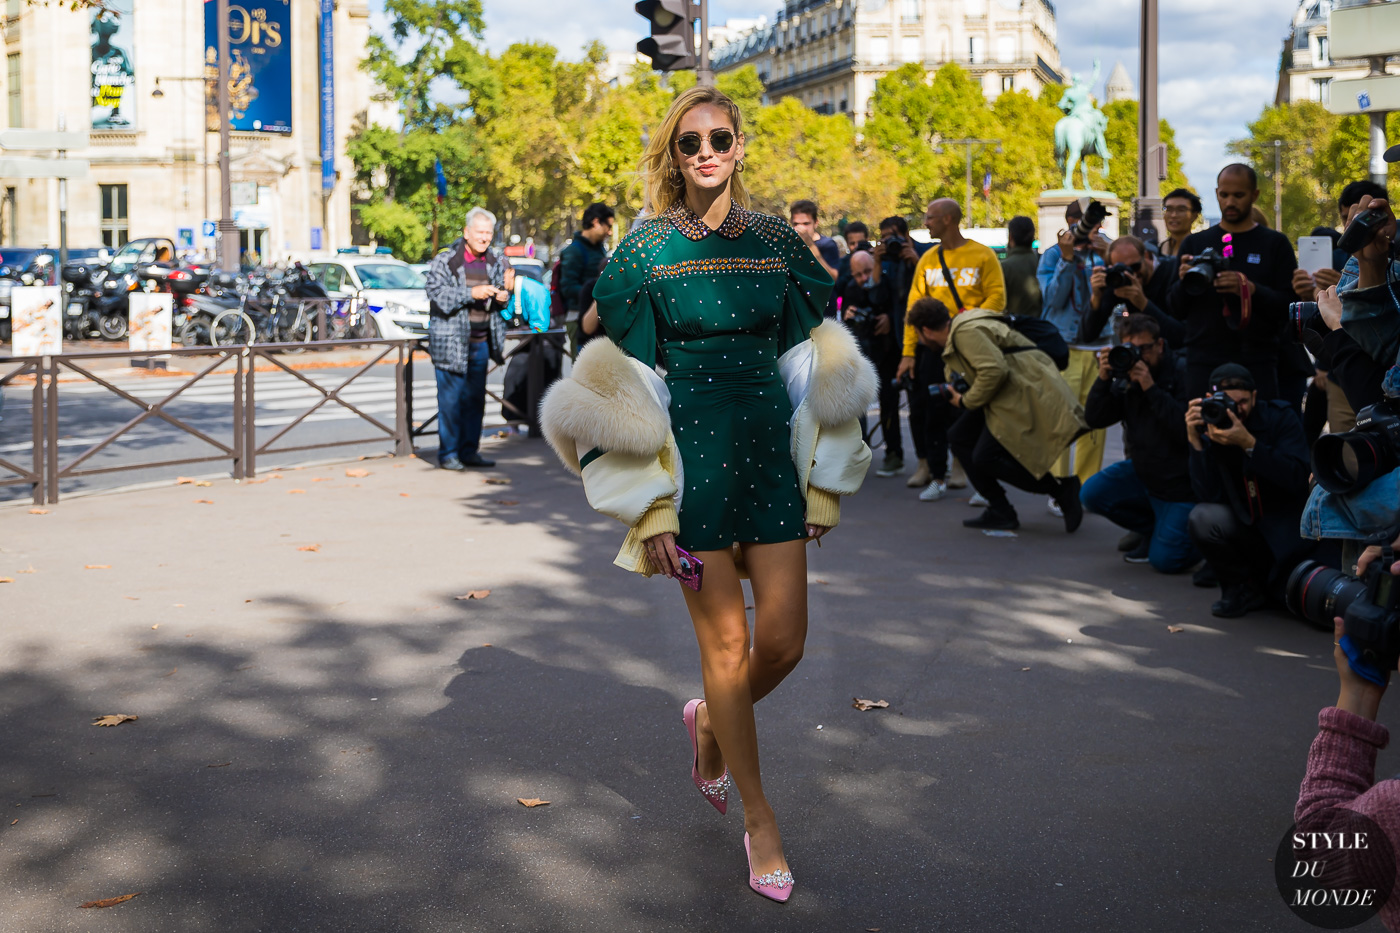 Chiara Ferragni by STYLEDUMONDE Street Style Fashion Photography_48A4337